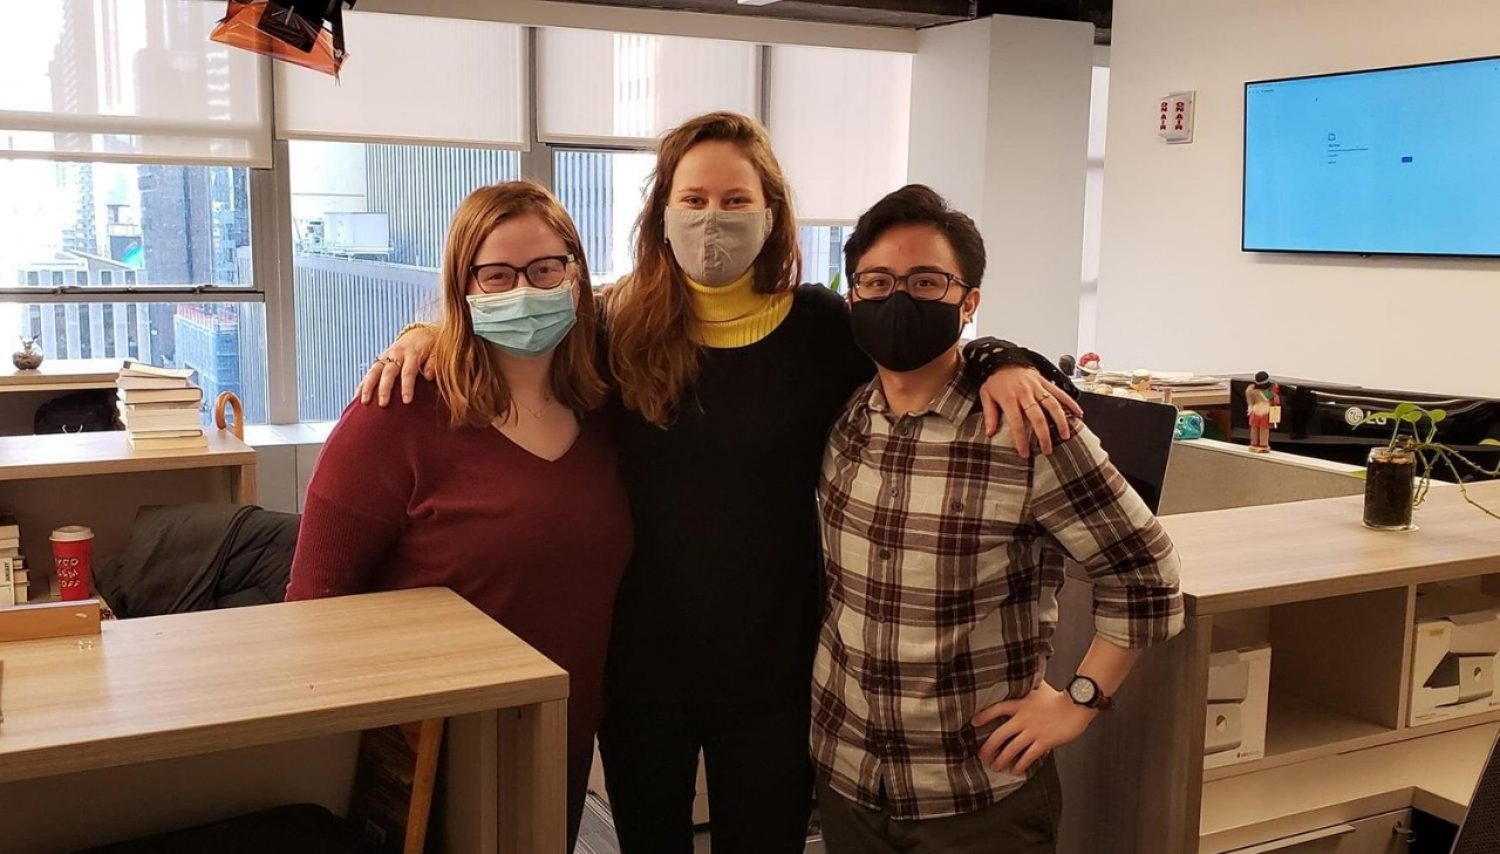 Three people wearing masks standing in an office